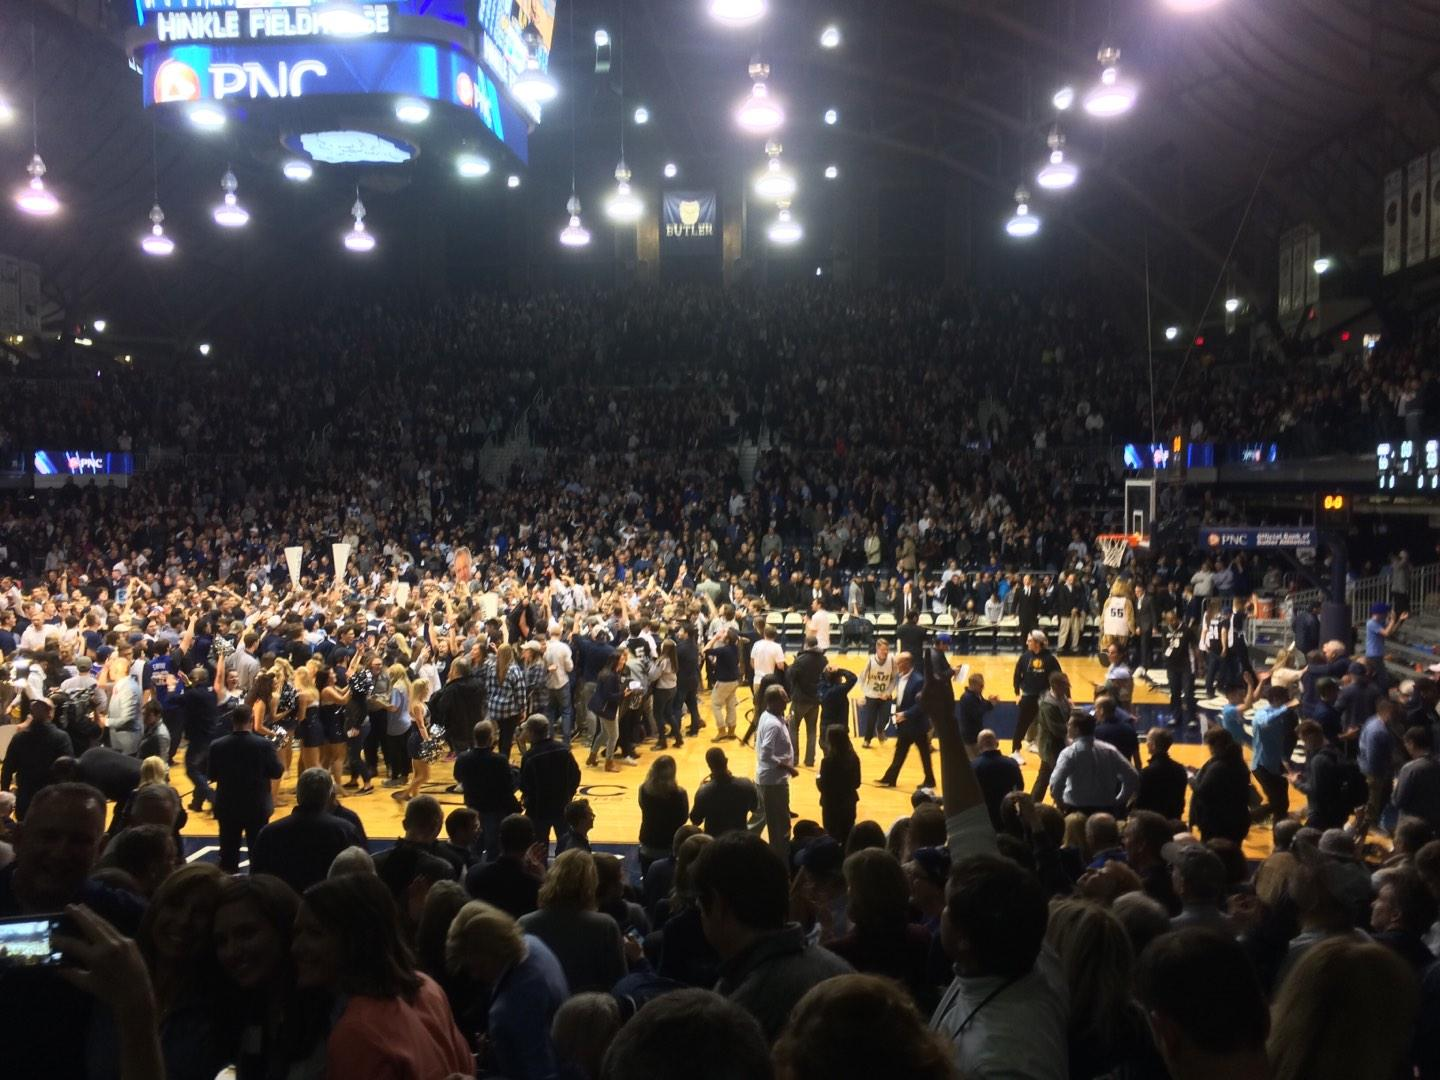 Hinkle Fieldhouse Section 121 Row 11 Seat 10